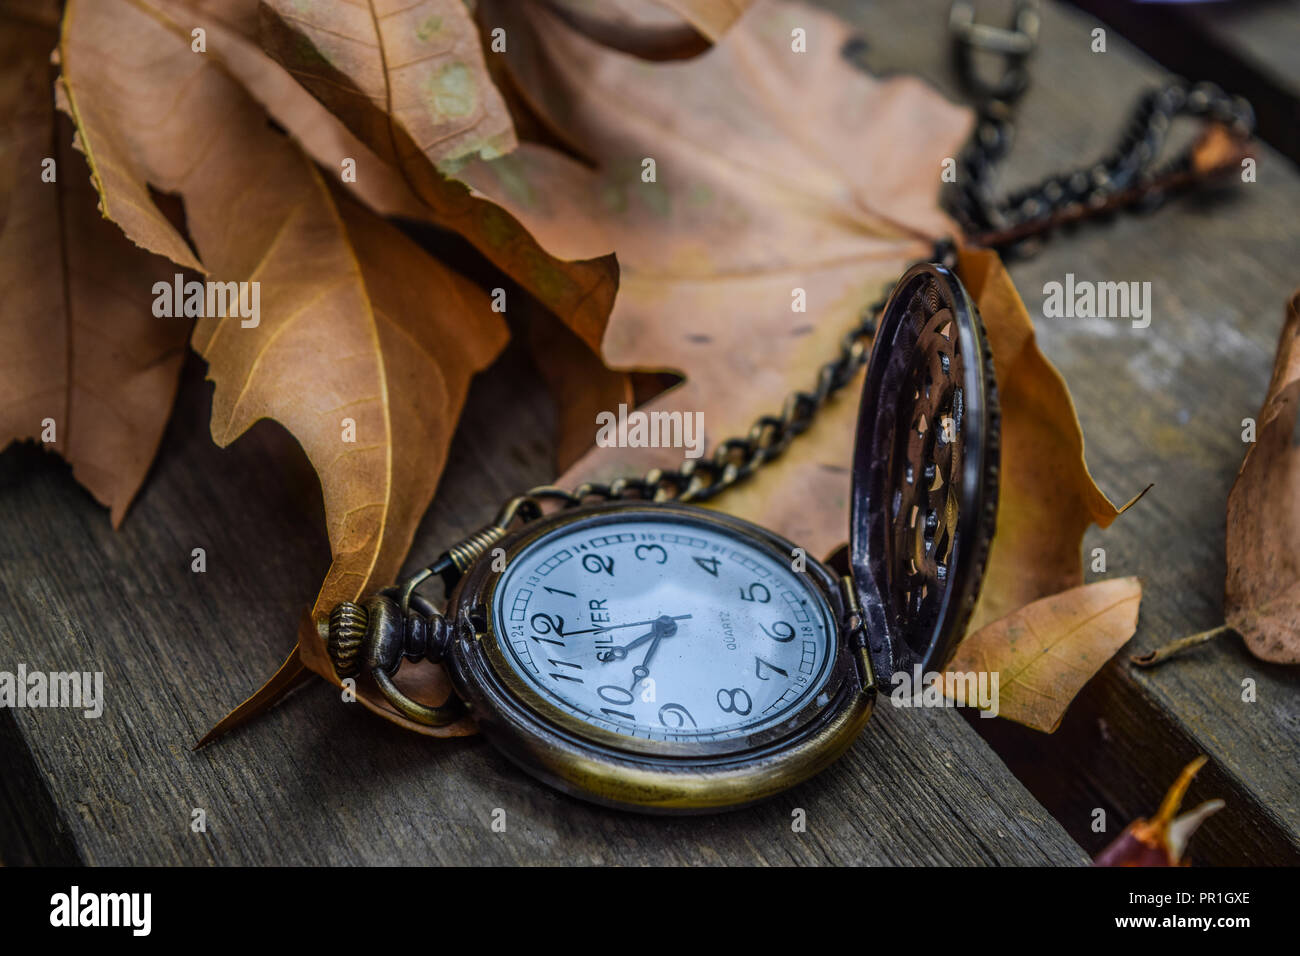 Pocket watch on autumn leaves - Stock Image